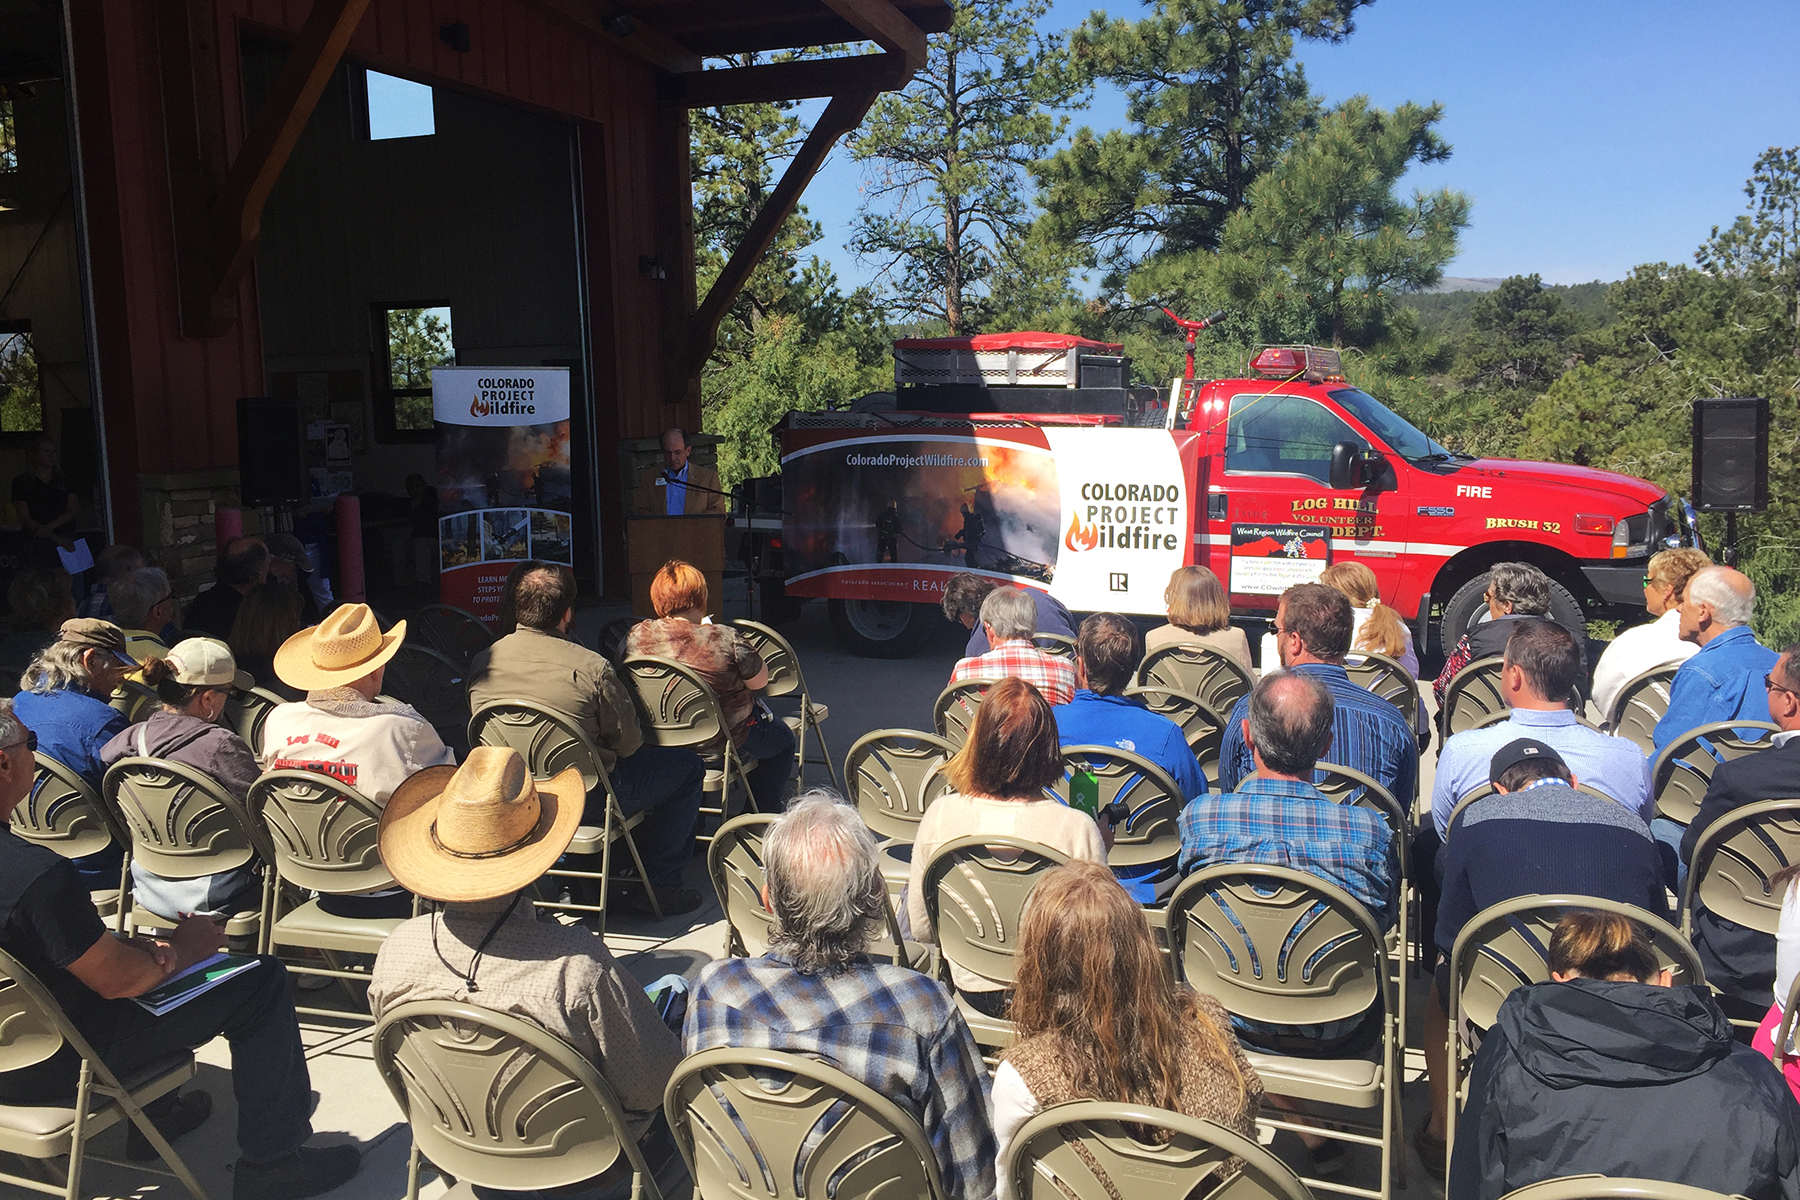 Image of Past President Alan Lovitt presenting at a Colorado Project Wildfire event